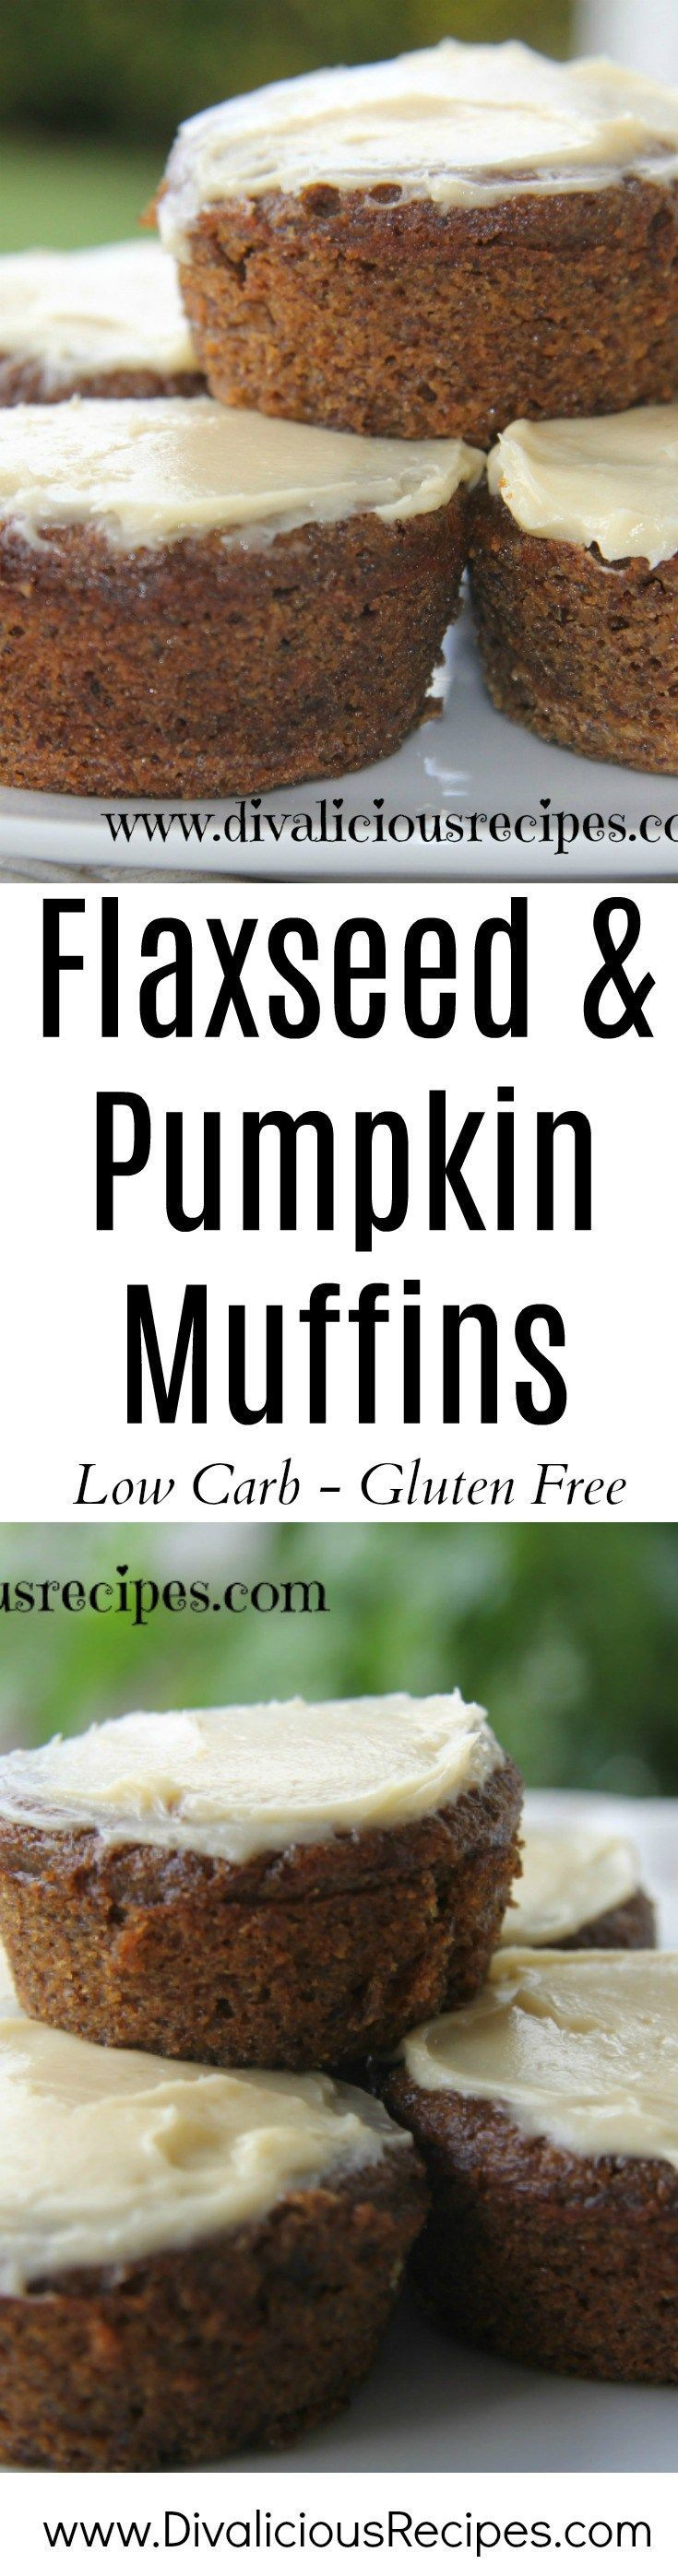 Flaxseed pumpkin muffins make a healthy breakfast or a snack on the go. Low